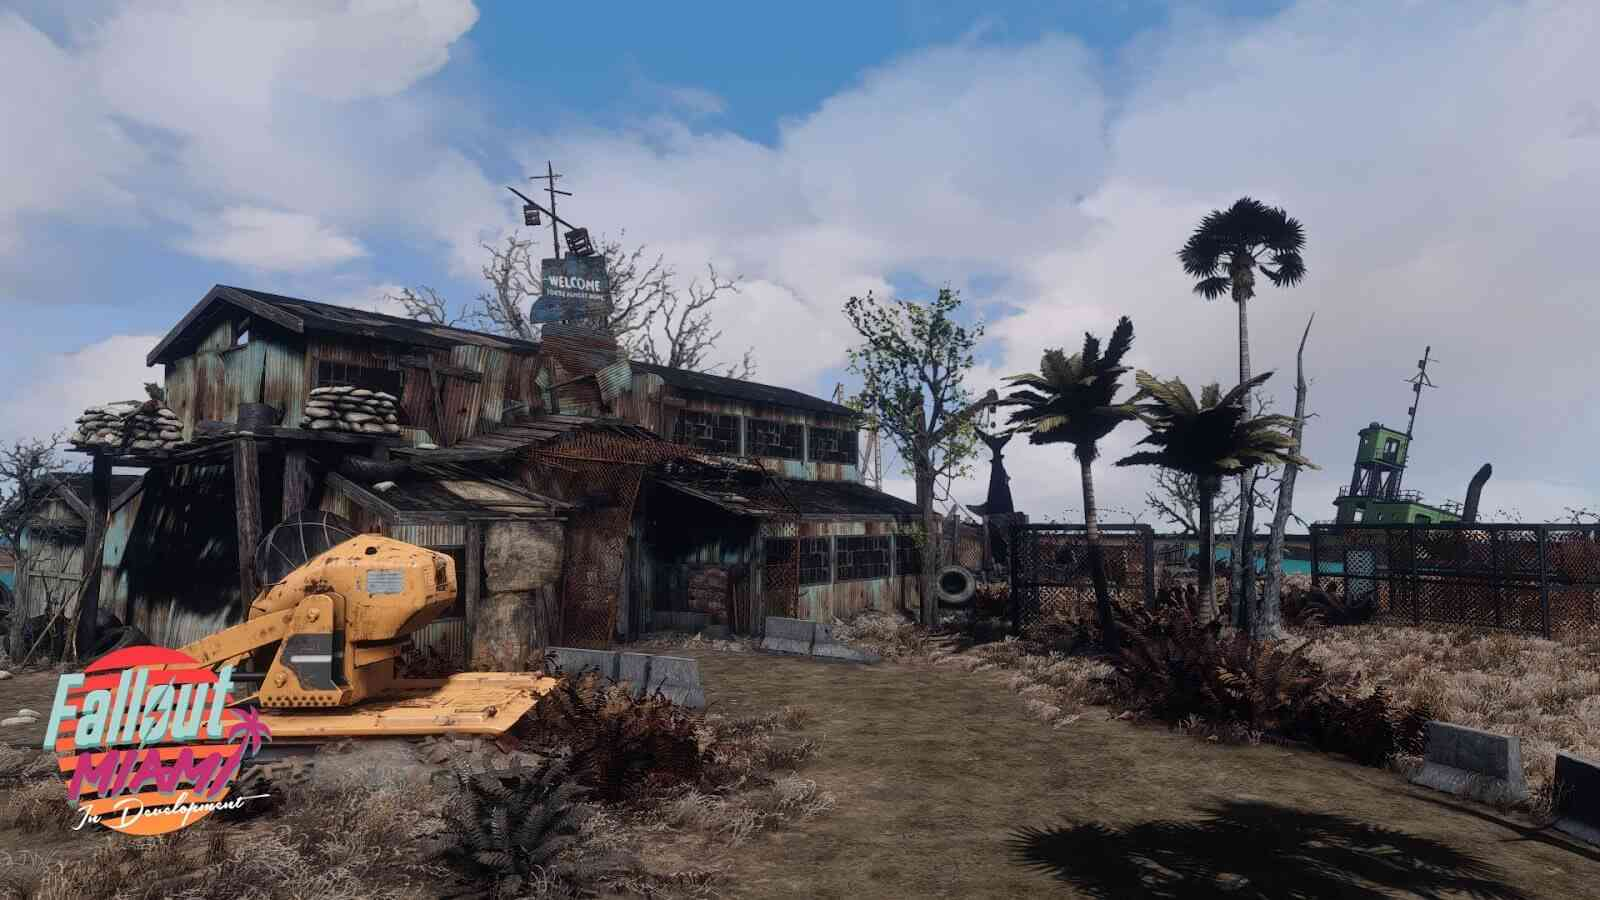 FalloutMiami - BoatHouse